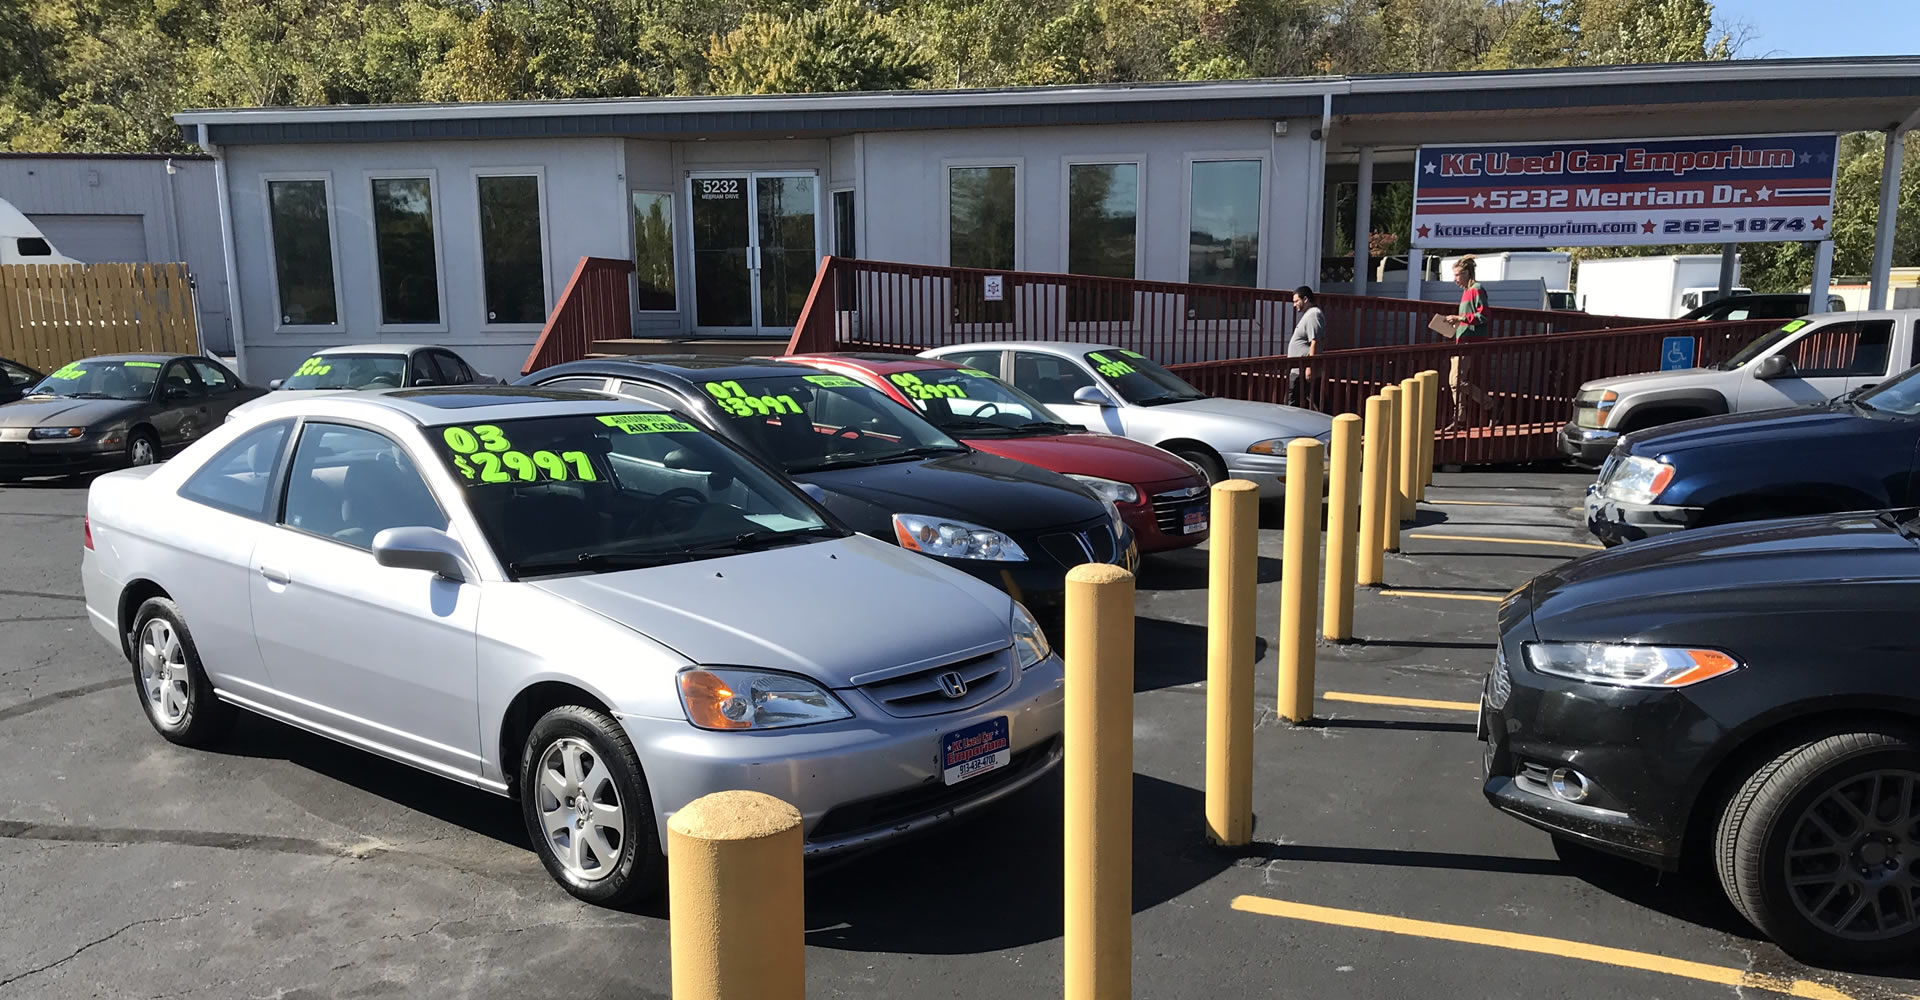 Used Cars for Sale by Owner Unique Kc Used Car Emporium Kansas City Ks